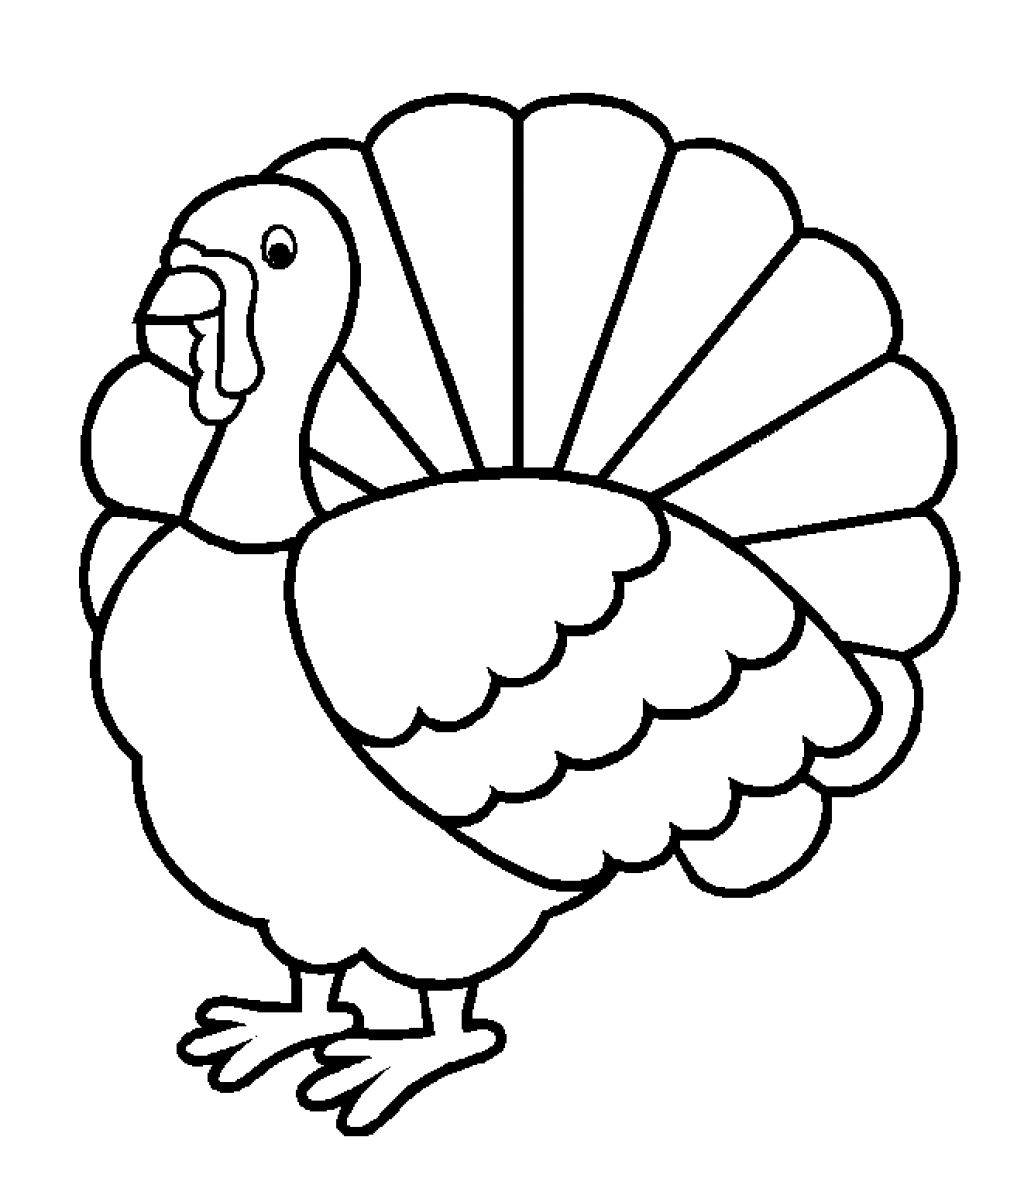 1024x1178 Black And White Turkey Coloring Pages 15228 14531945 Turkey